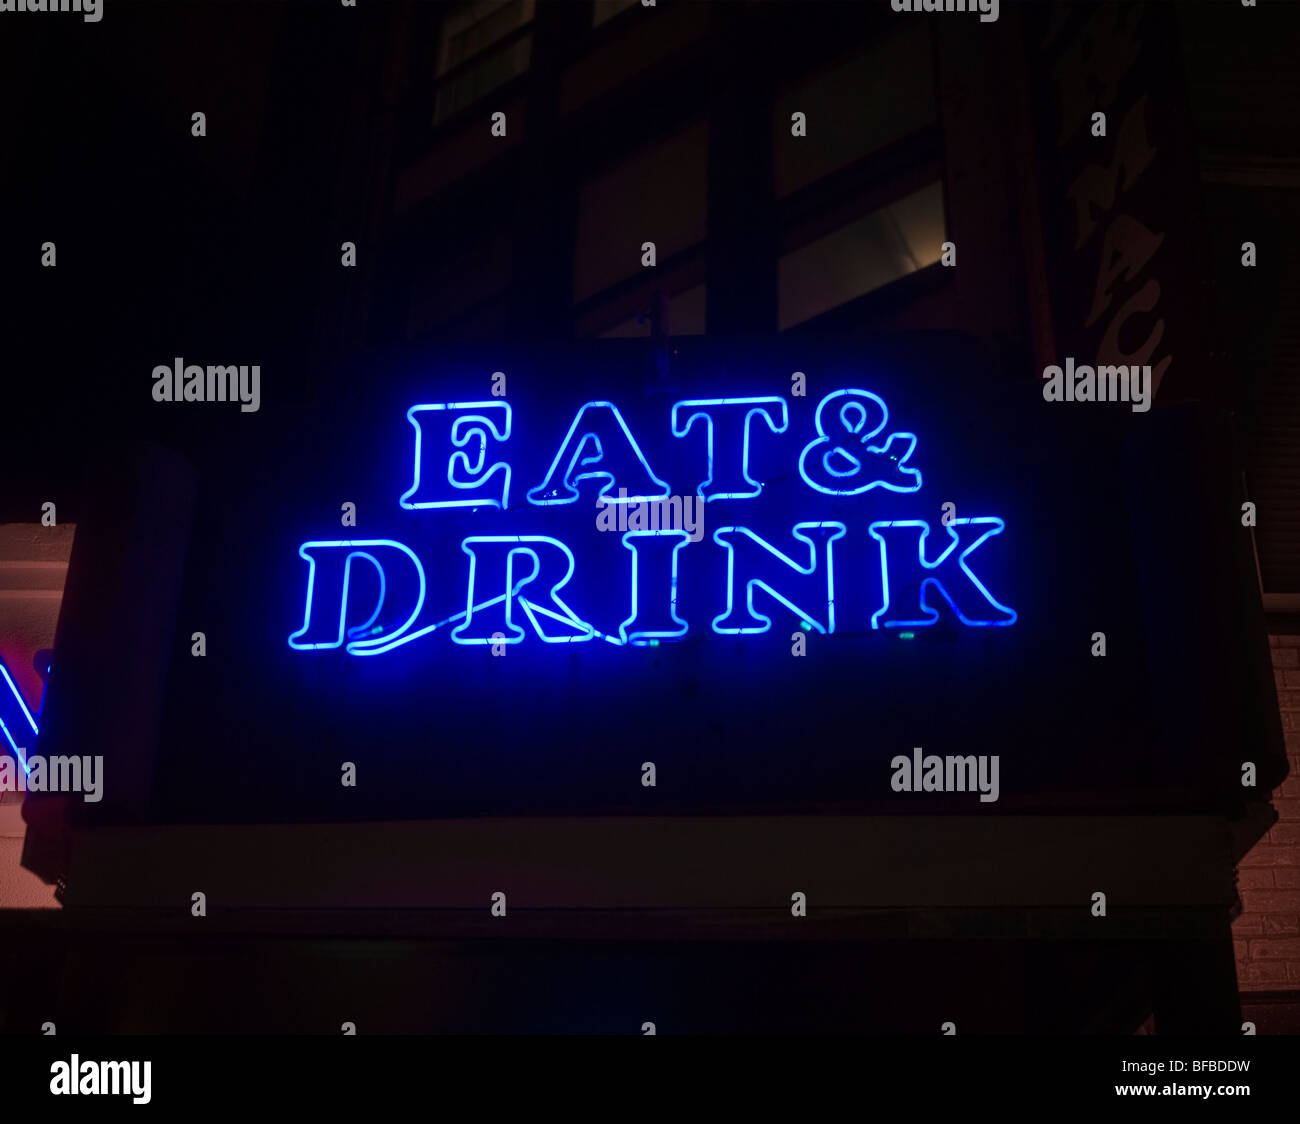 Eat and drink illuminated neon sign at the entrance of a